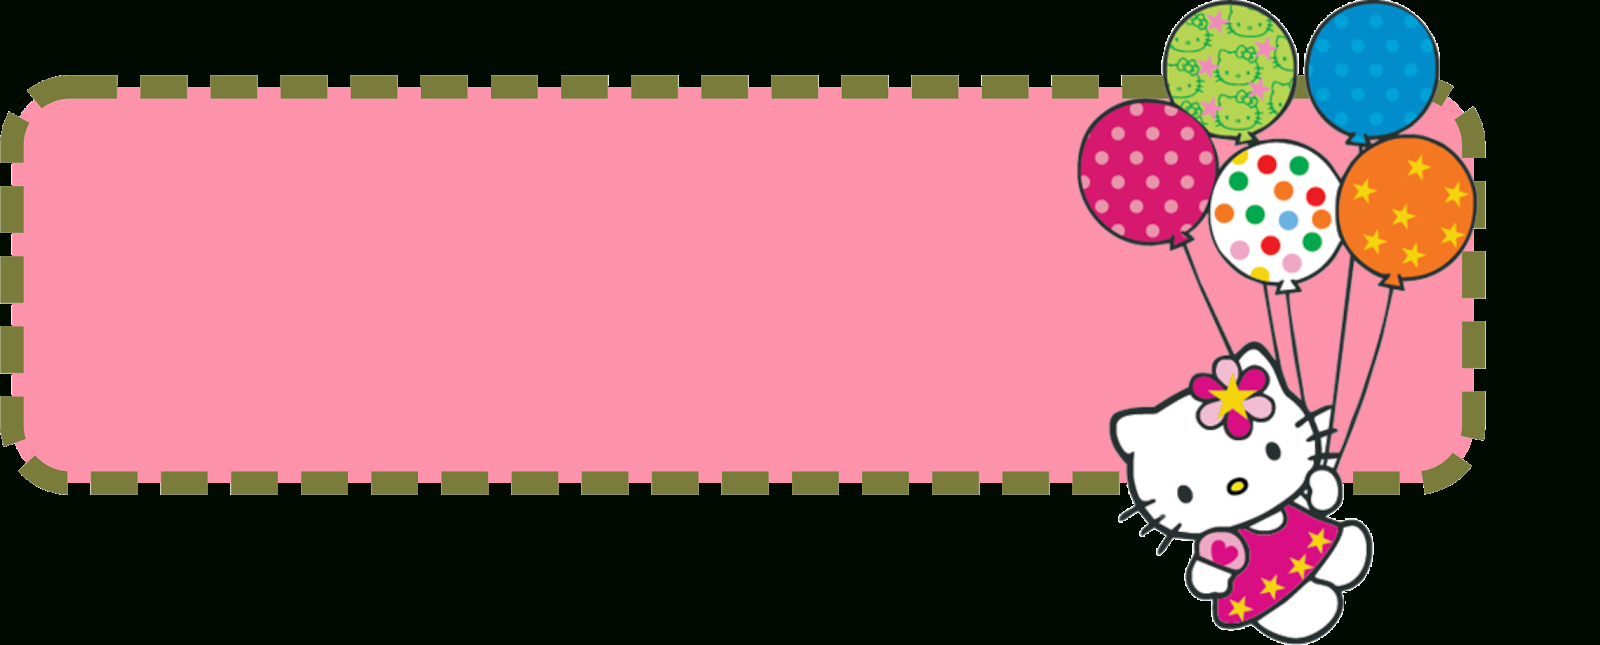 Hello Kitty Banner Template  Banner And Forum Templates With Hello Kitty Banner Template